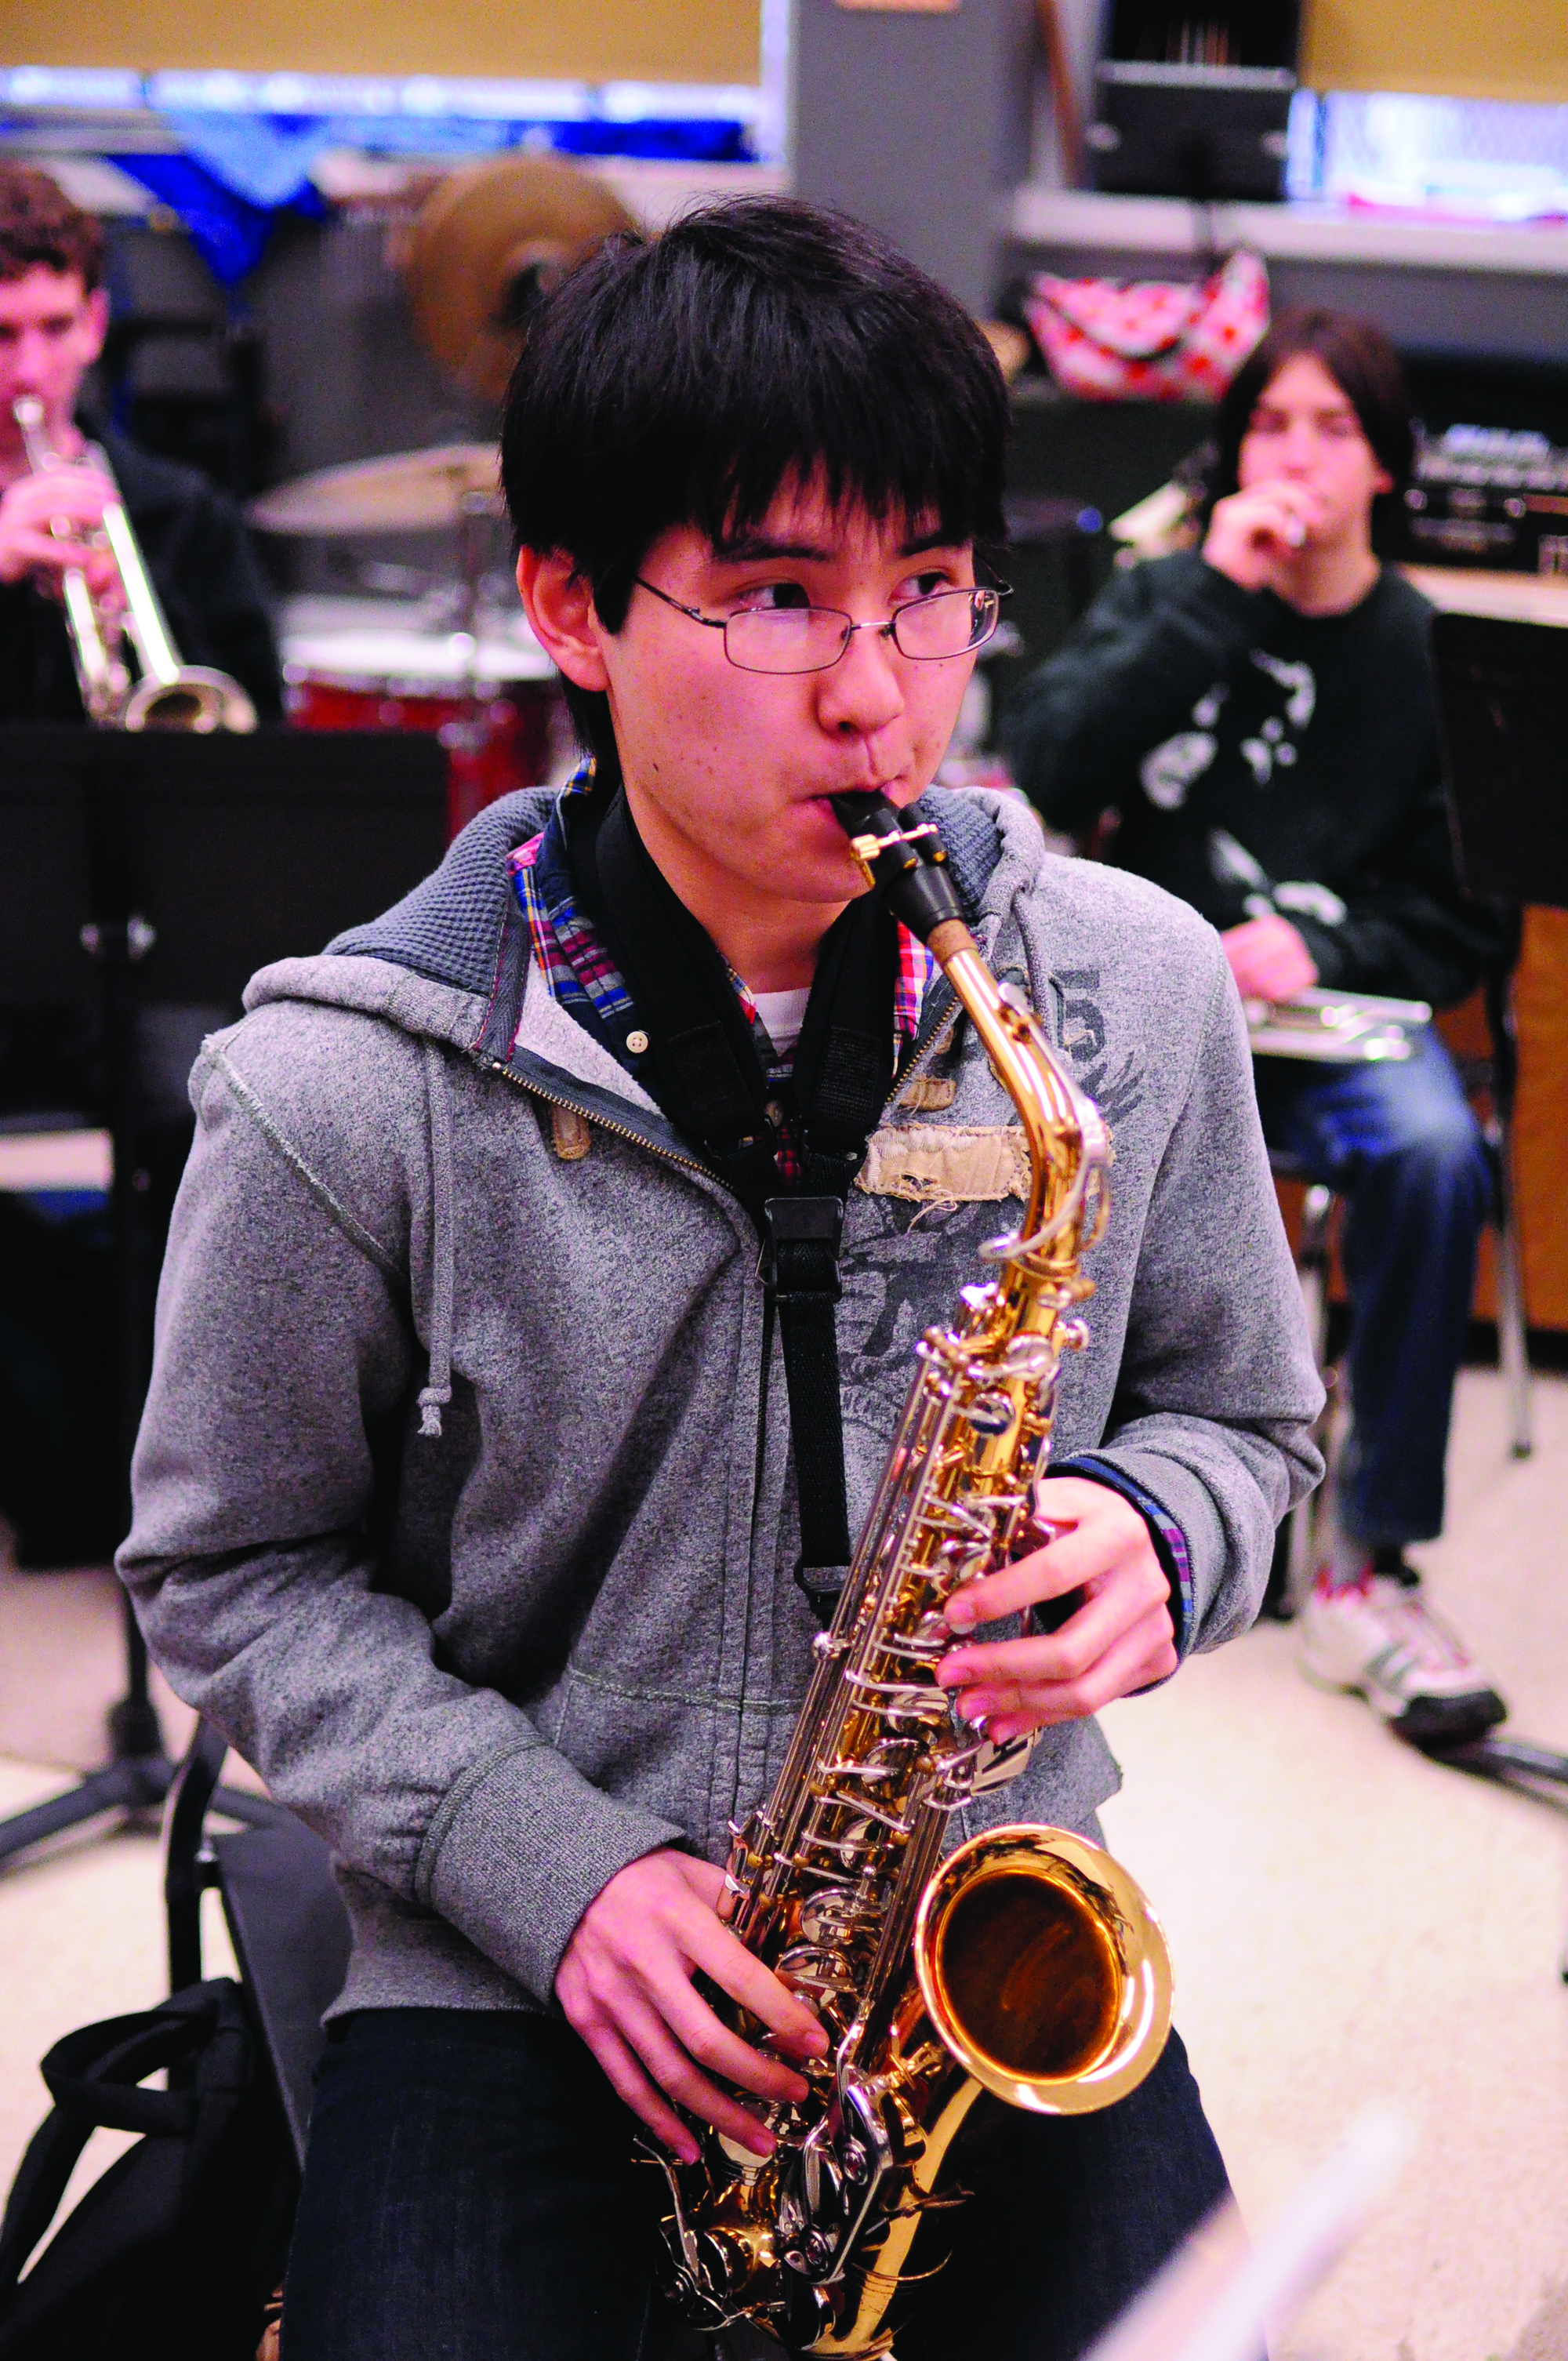 Junior Kenneth Fukumoto, a high-achieving  saxophone player, will perform in Arizona in April for the North American Saxophone Alliance's Young Artist Competition.